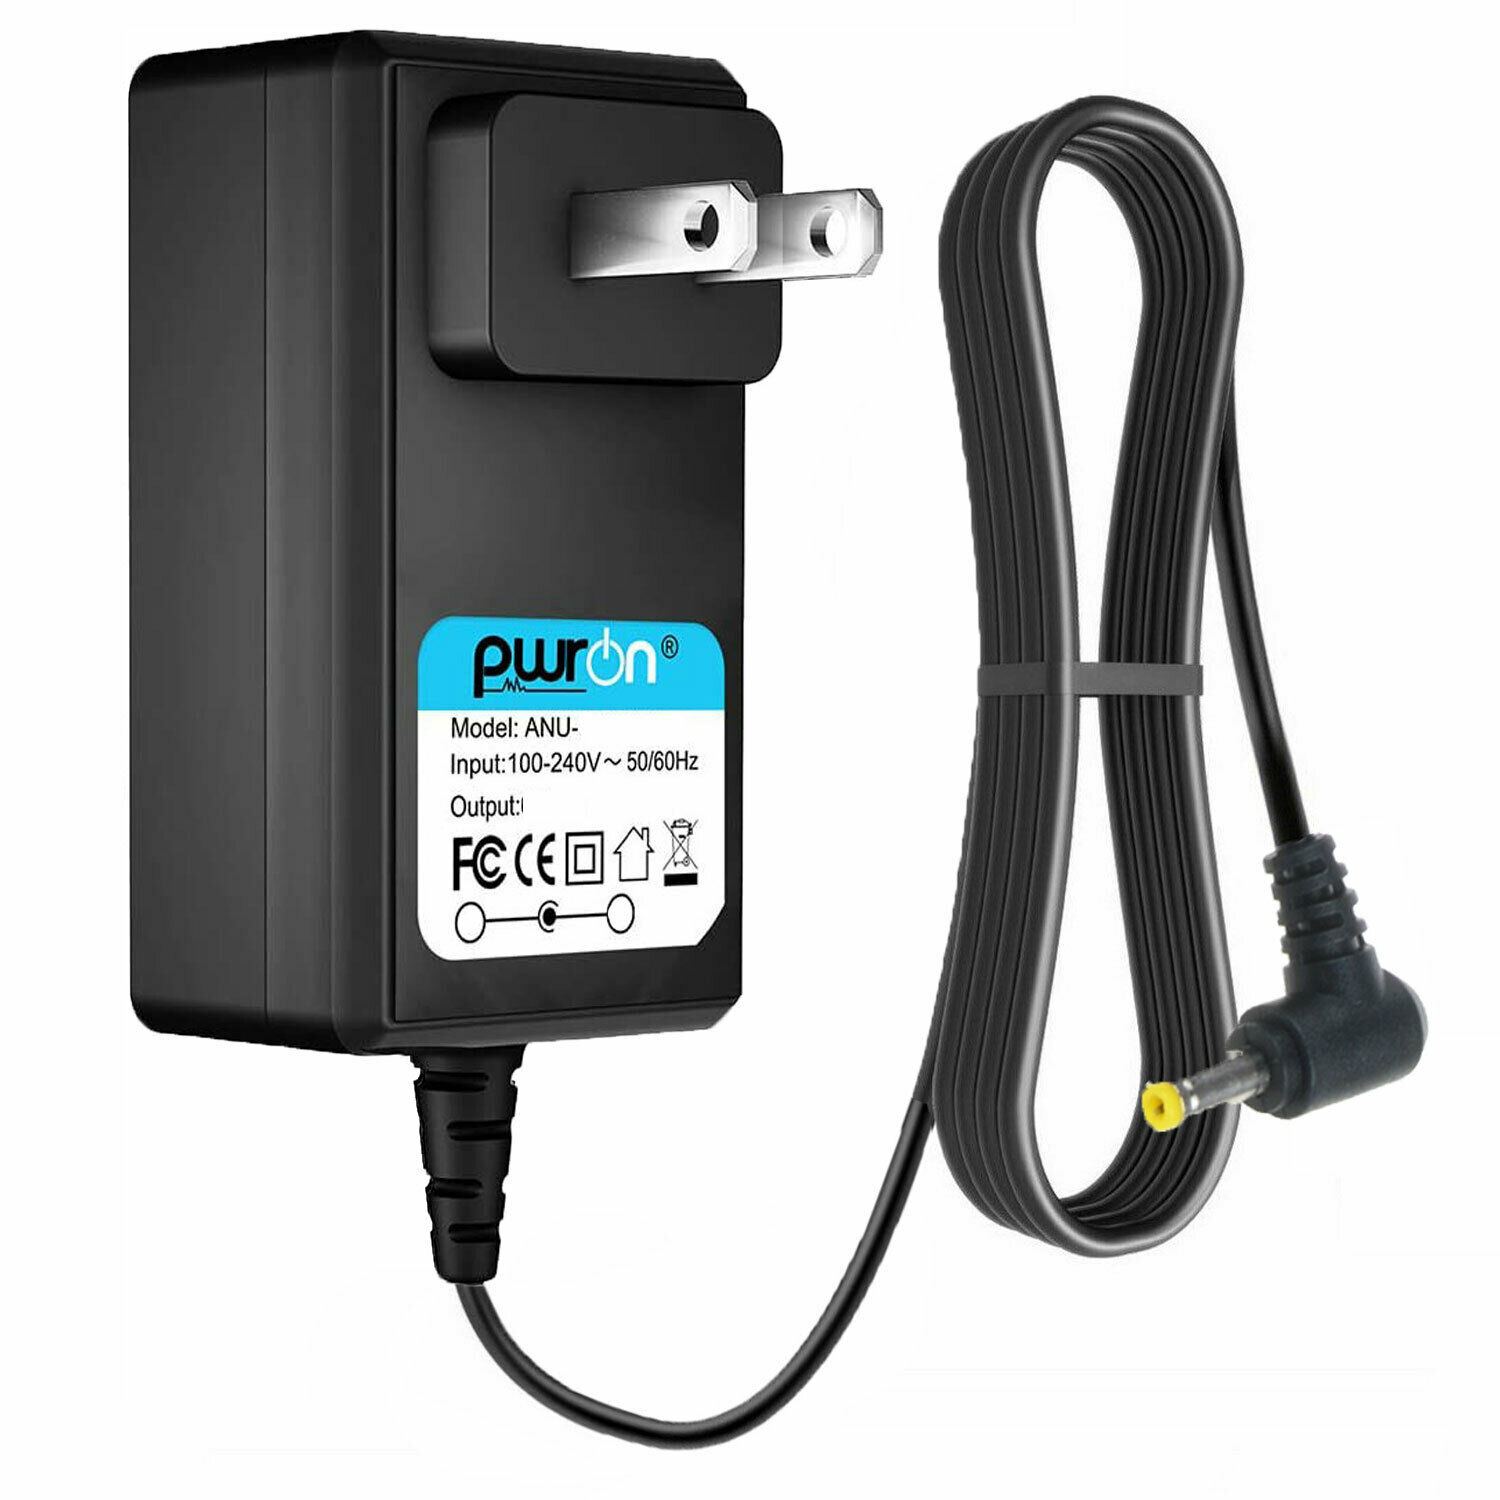 PwrON AC Adapter For Sony COMP-AC1 Class 2 Switching Power Supply Cord Charger